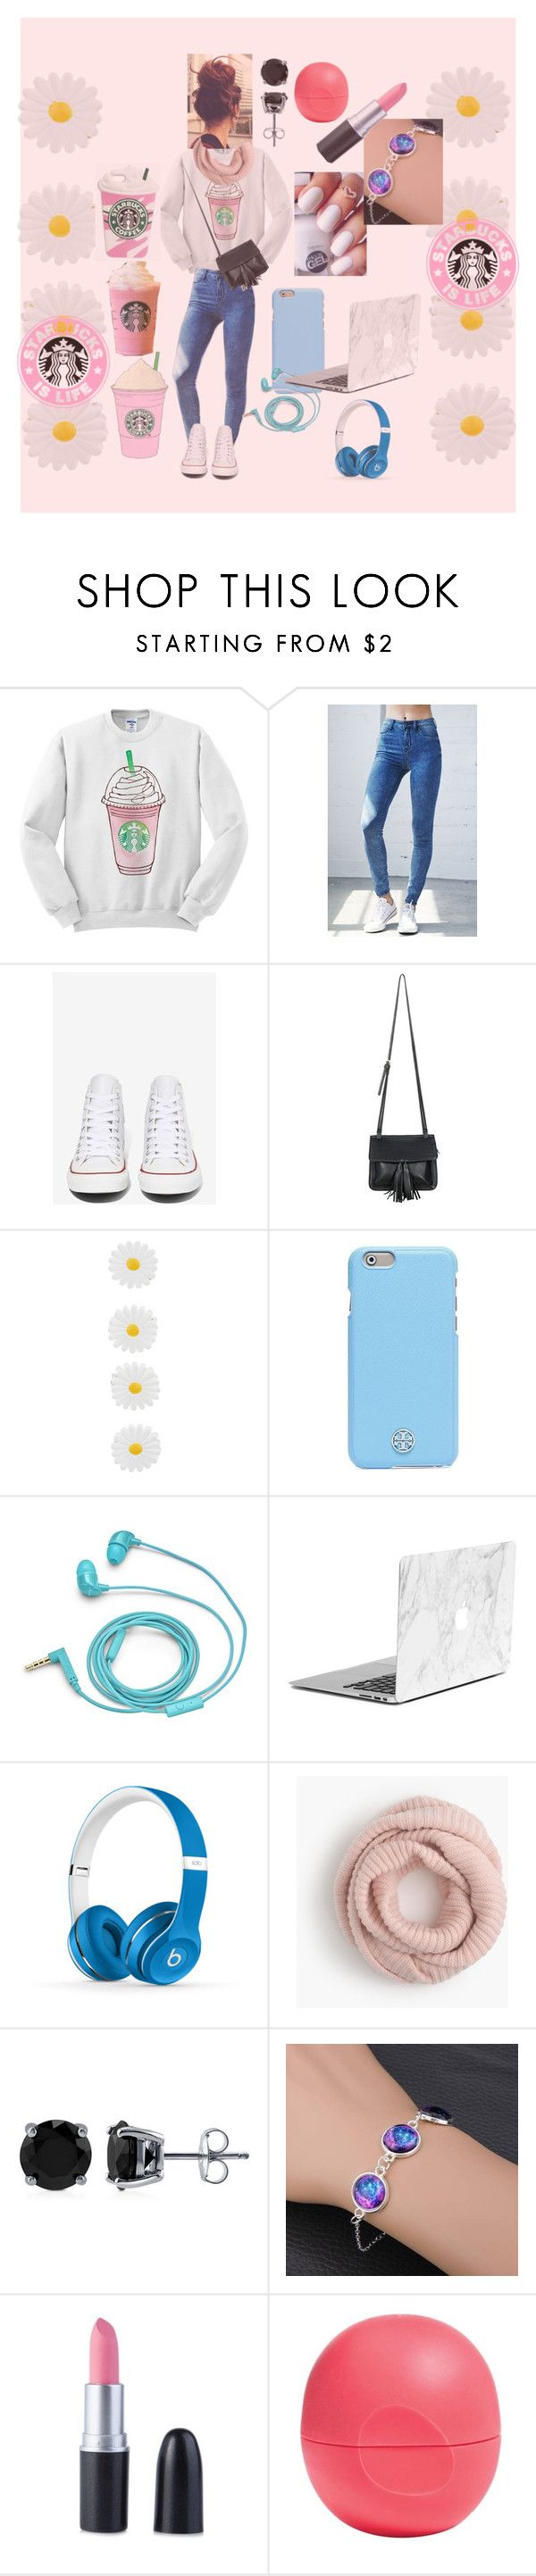 """""""Actually family is life"""" by miaaa08 ❤ liked on Polyvore featuring Bullhead Denim Co., Converse, Chicnova Fashion, Accessorize, Tory Burch, FOSSIL, Beats by Dr. Dre, J.Crew, BERRICLE and Eos"""